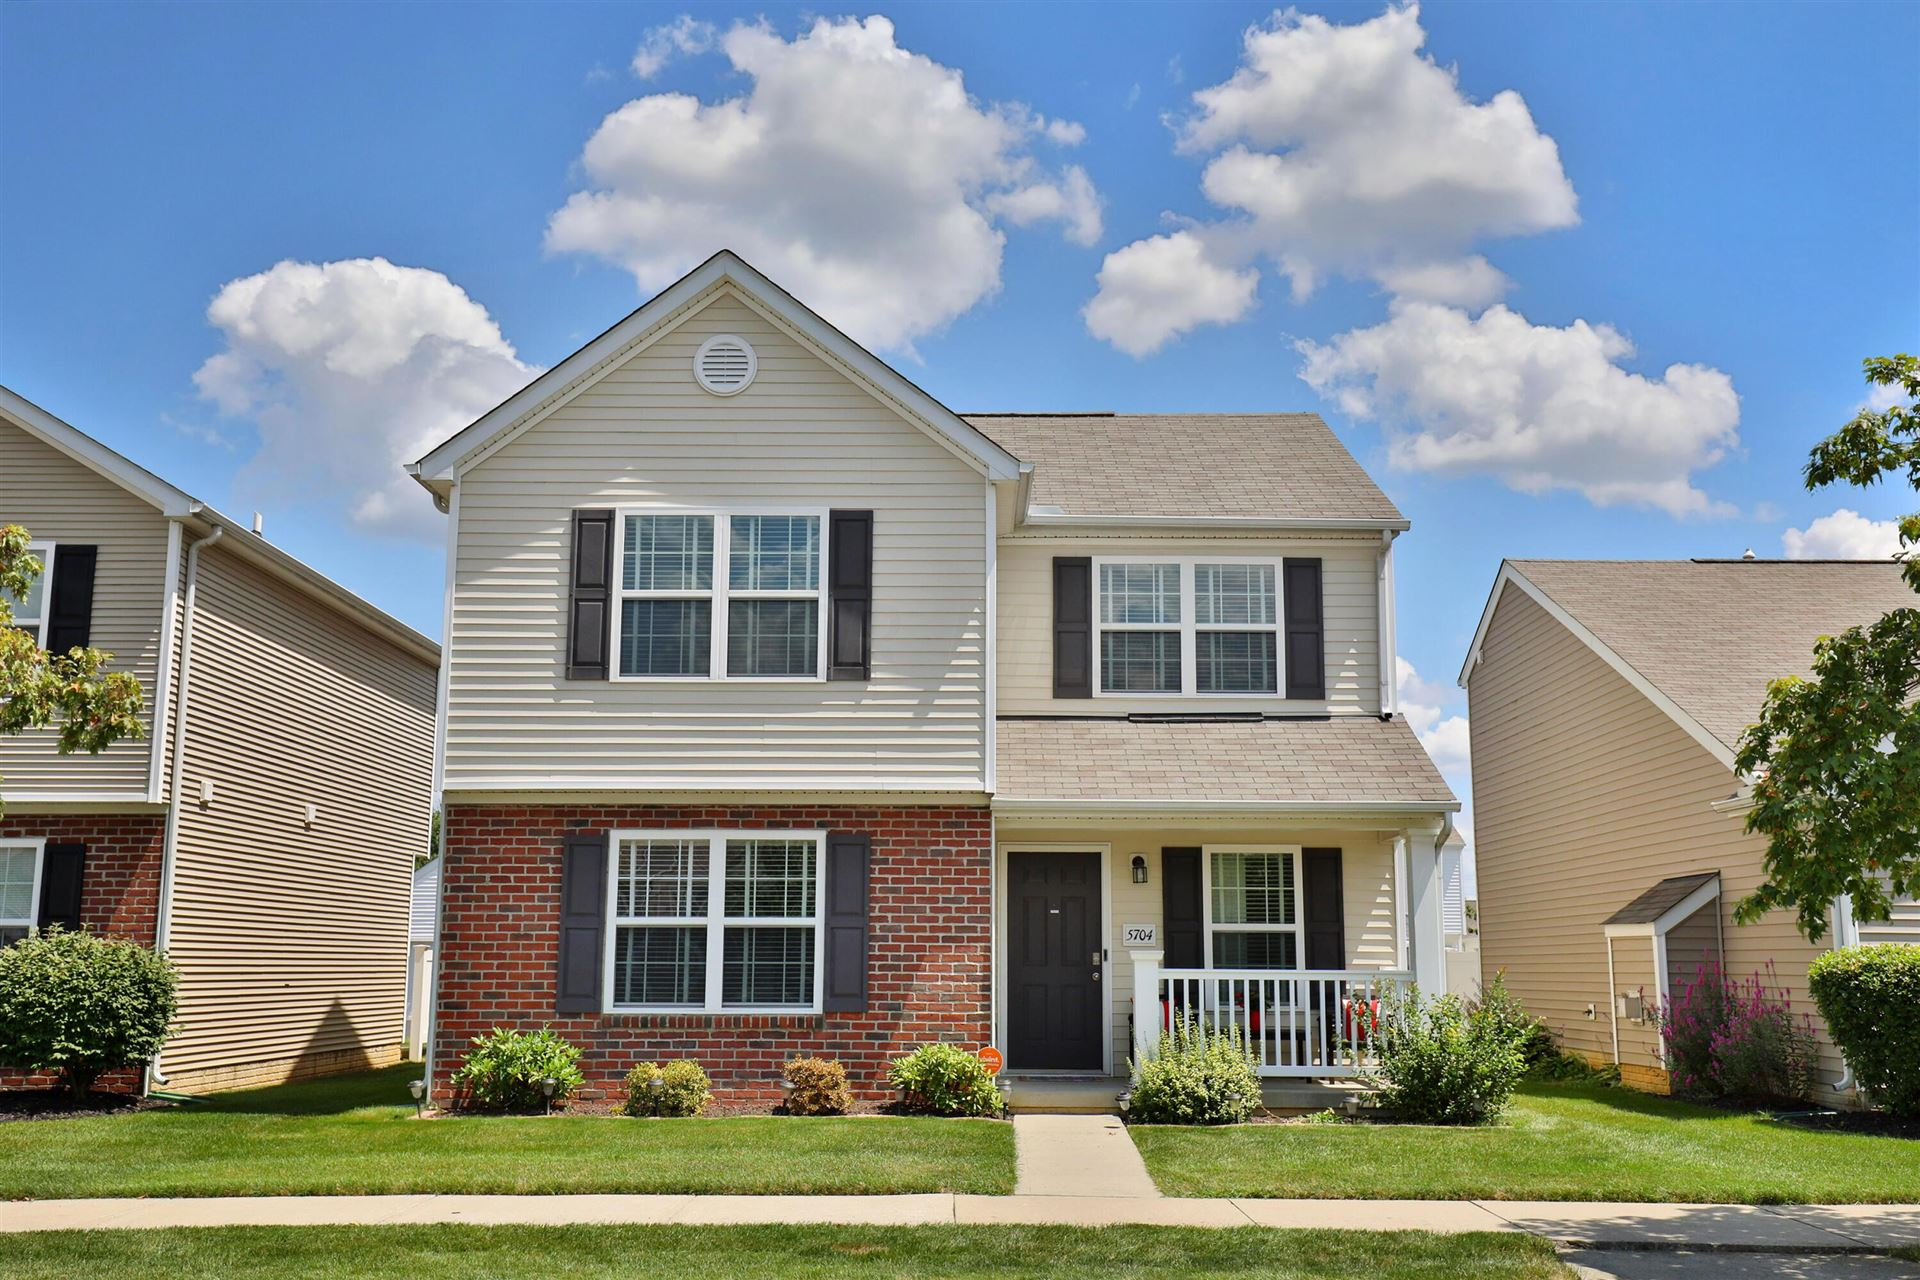 Photo of 5704 Caledonia Drive, Westerville, OH 43081 (MLS # 221029154)